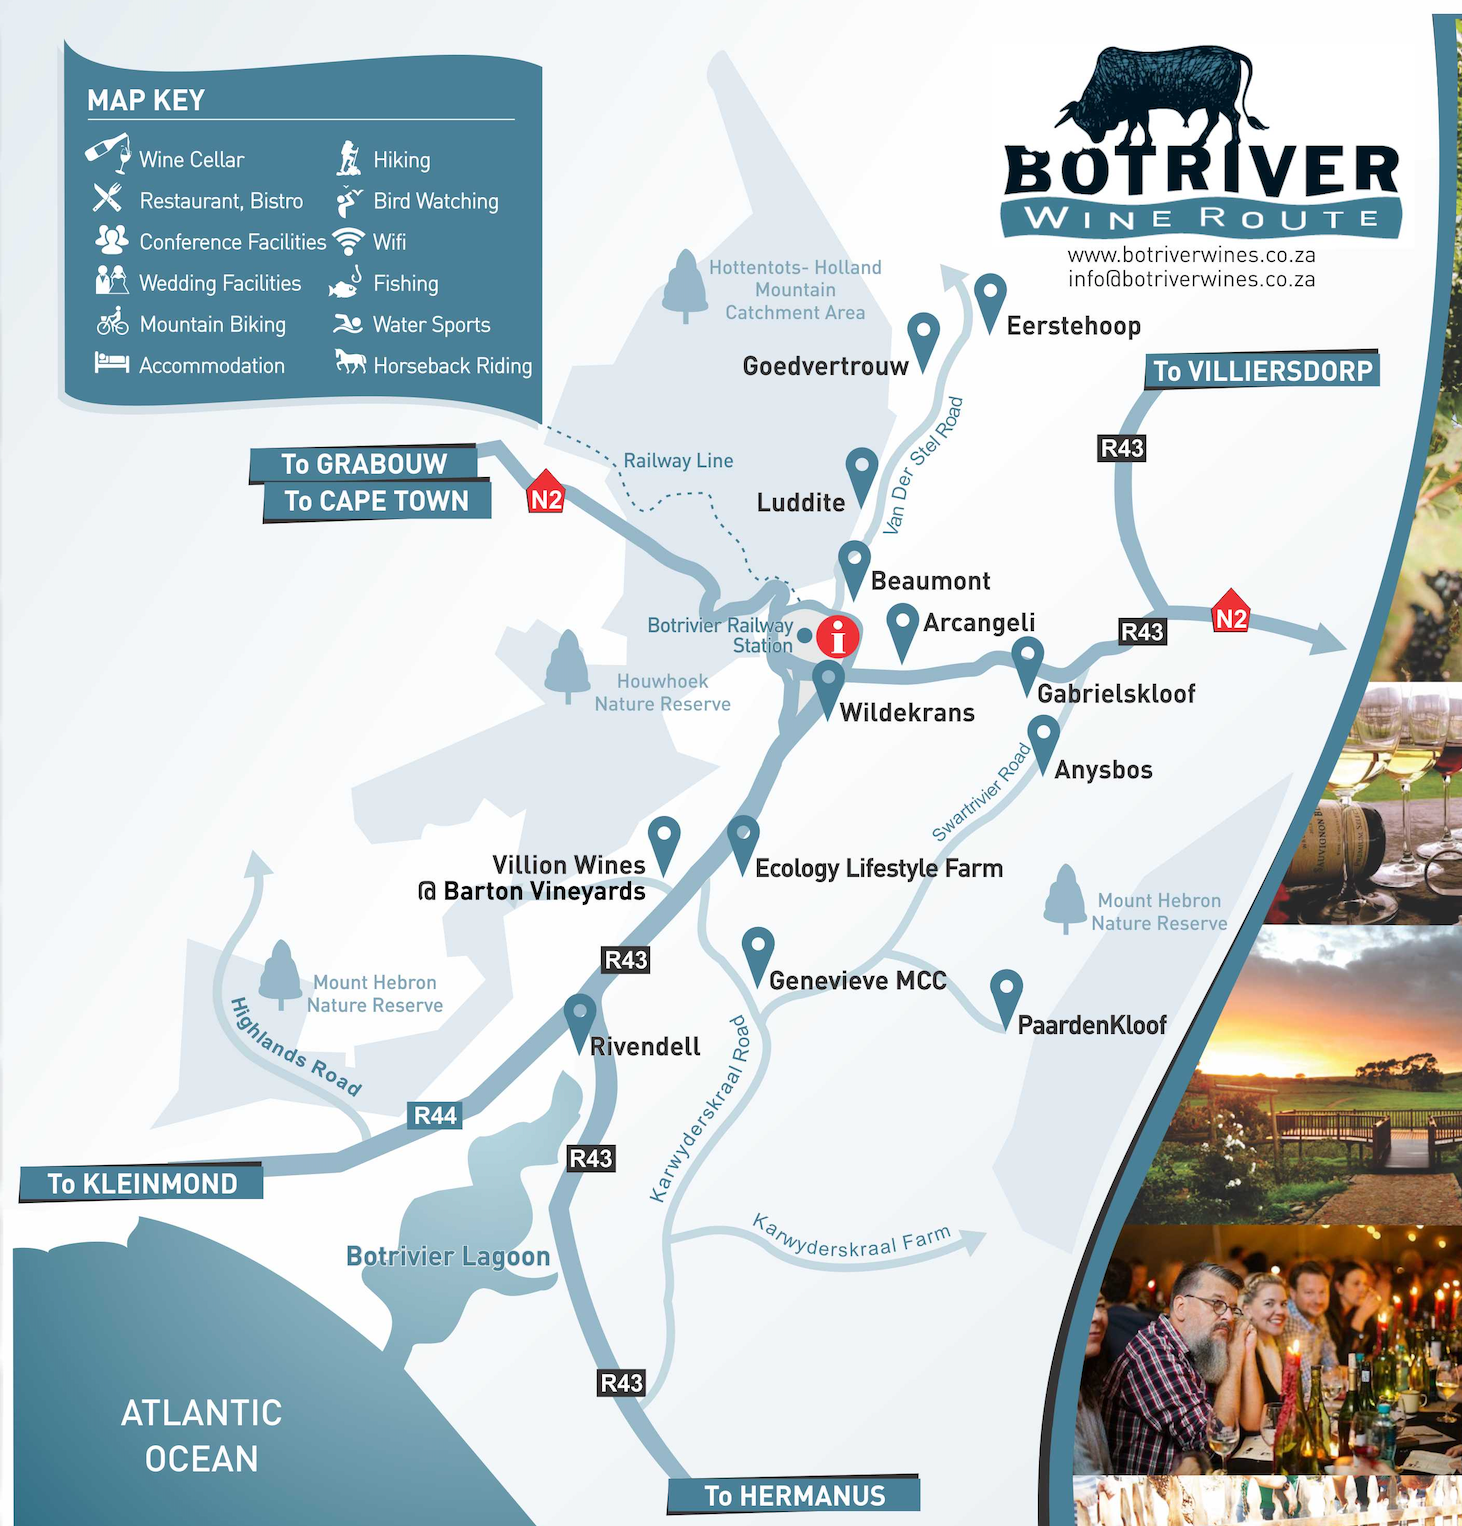 Map of Bot River Wine Route